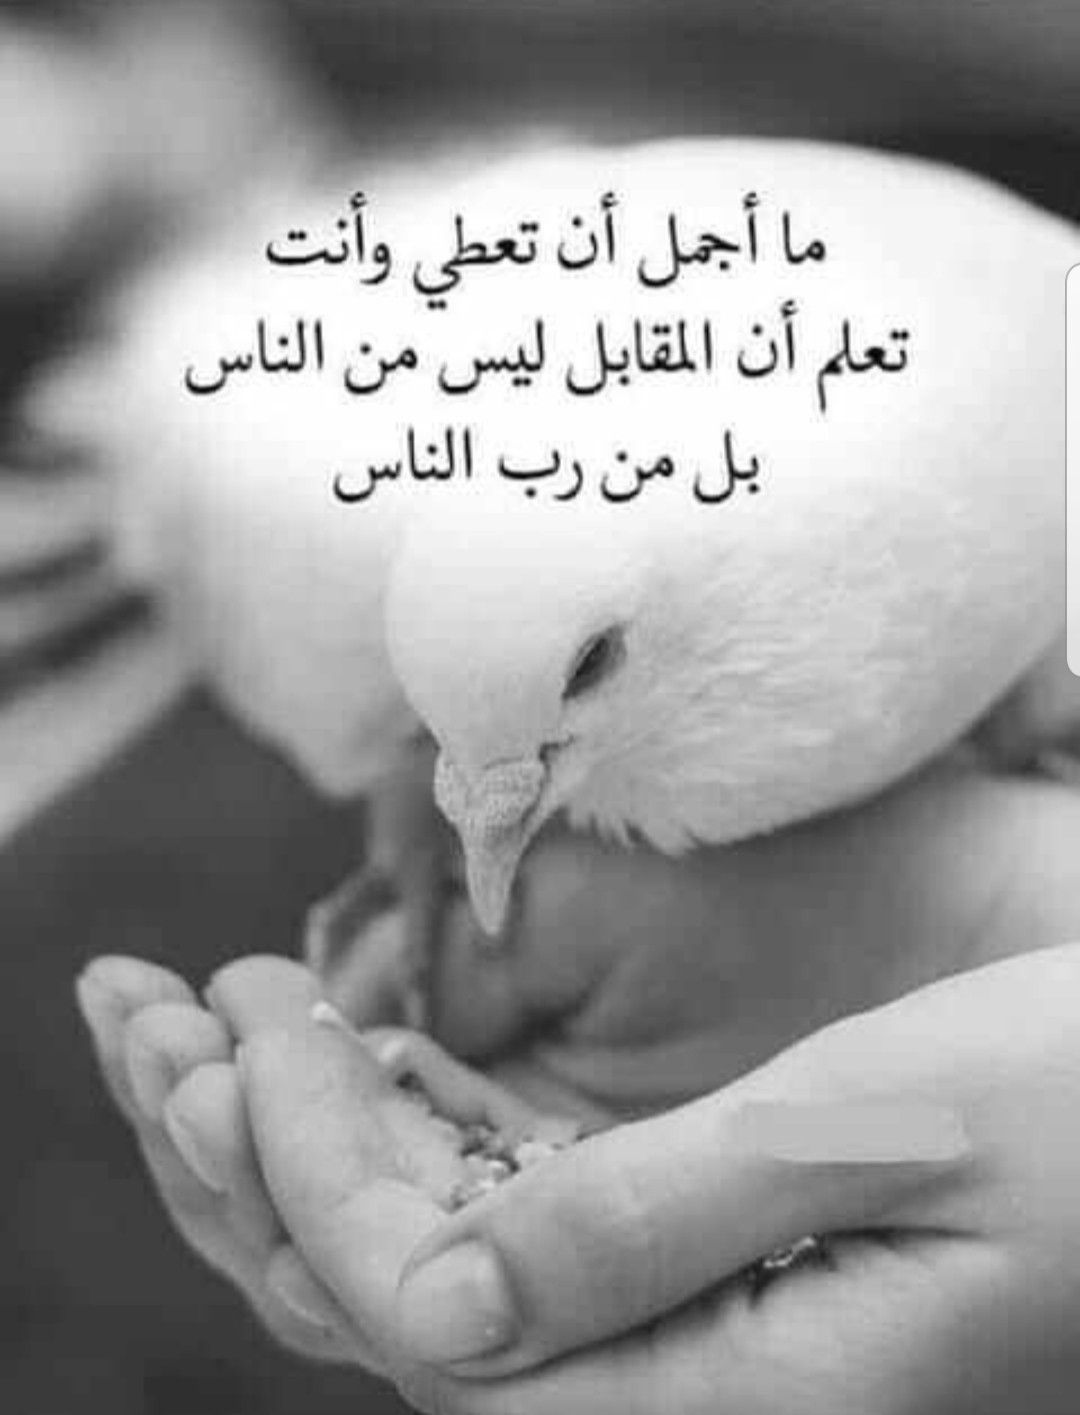 Pin By Lolo On روحانيات Arabic Quotes Quotes Historical Figures